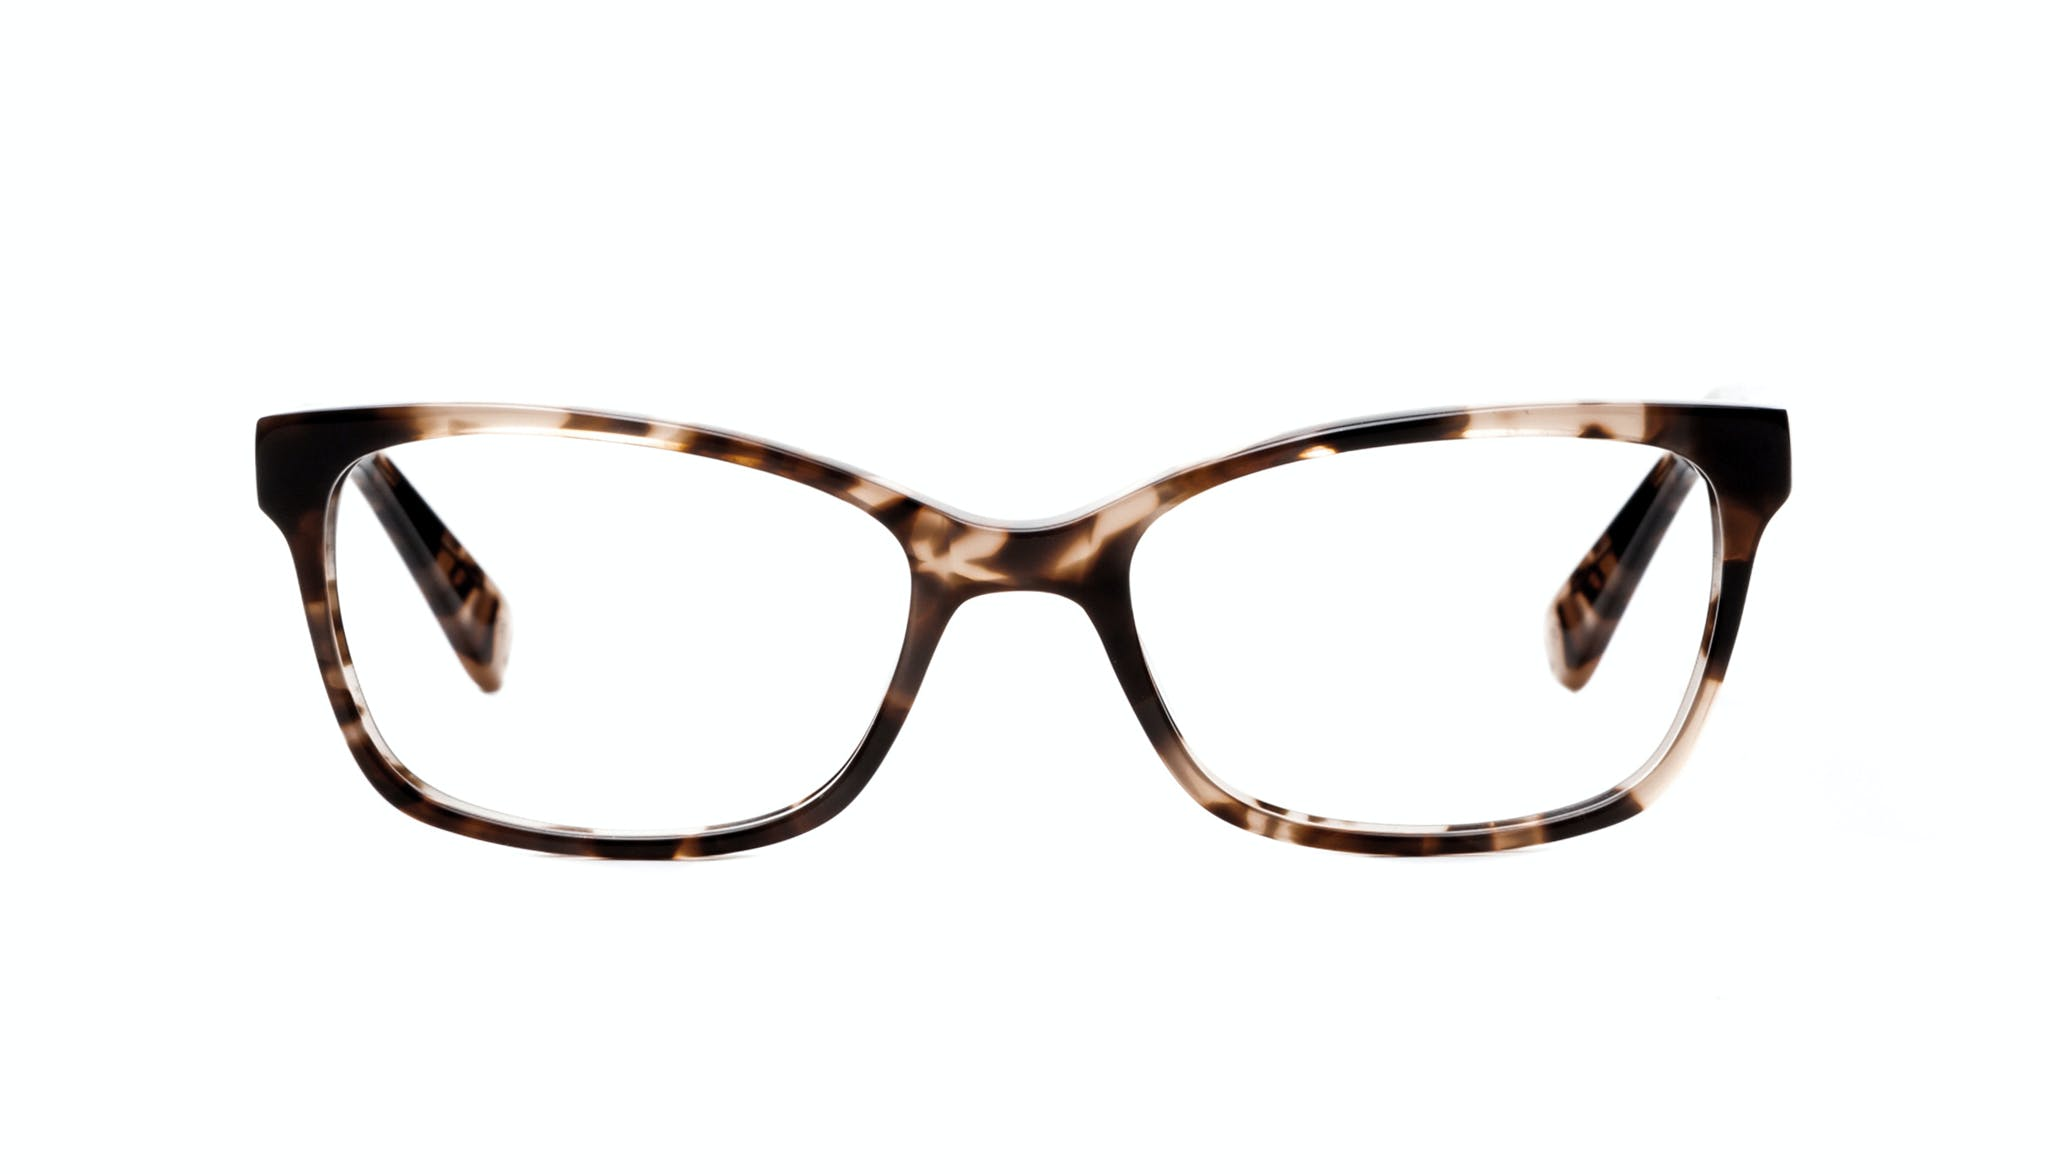 Affordable Fashion Glasses Cat Eye Rectangle Square Eyeglasses Women Comet Pink Tortoise Front